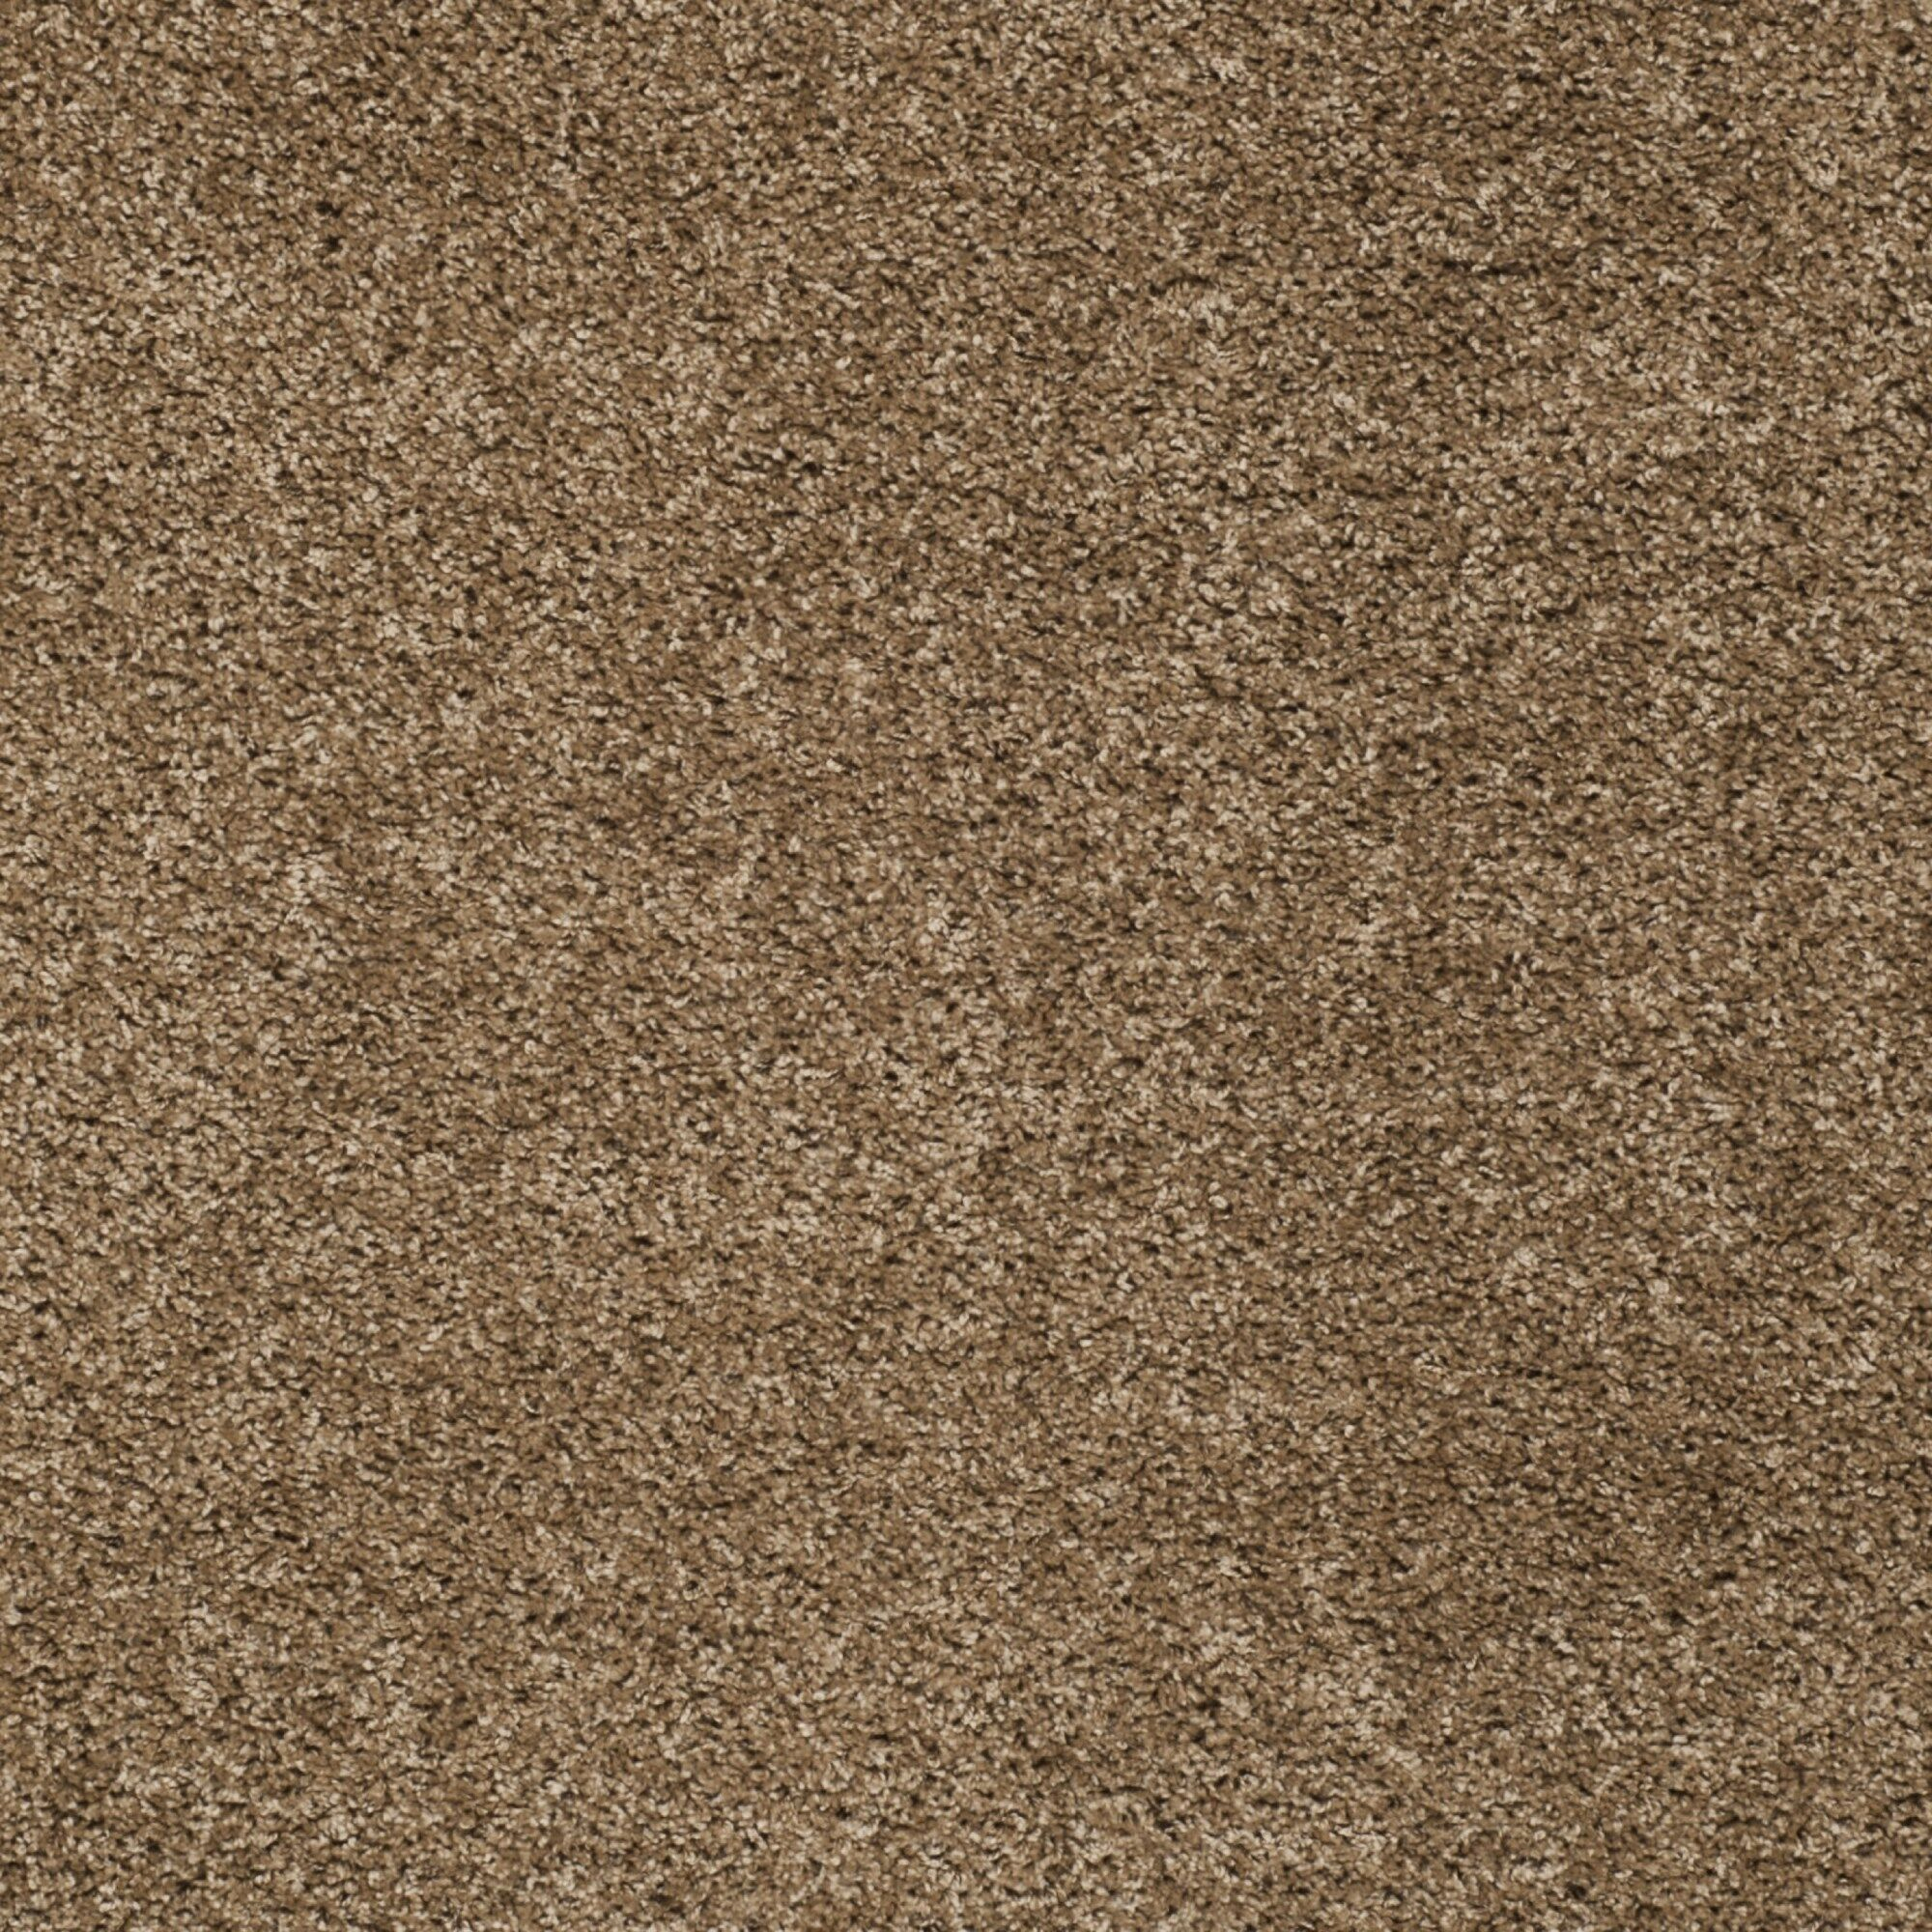 Helsel Dark Beige Area Rug Rug Size: Rectangle 5'1